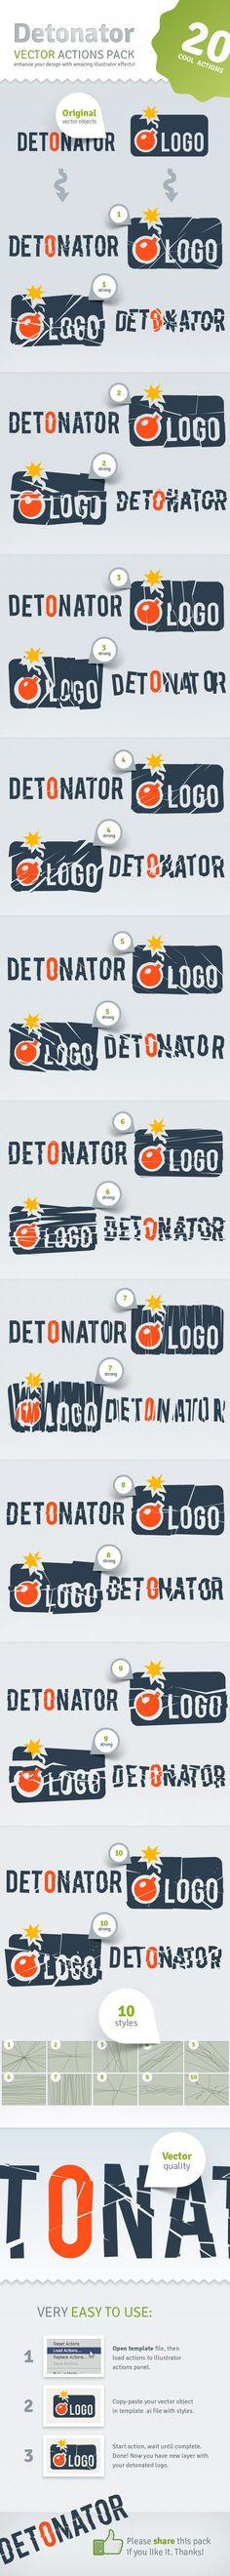 Buy Vector Detonator - Illustrator Actions Pack by Kontramax on GraphicRiver. vector actions pack for Adobe Illustrator and above wich allow to detonate your logo, text or any vectors in . Ai Illustrator, Illustrator Tutorials, Logo Shapes, Tool Design, Typography Design, Packing, Just For You, Graphic Design, Illustration